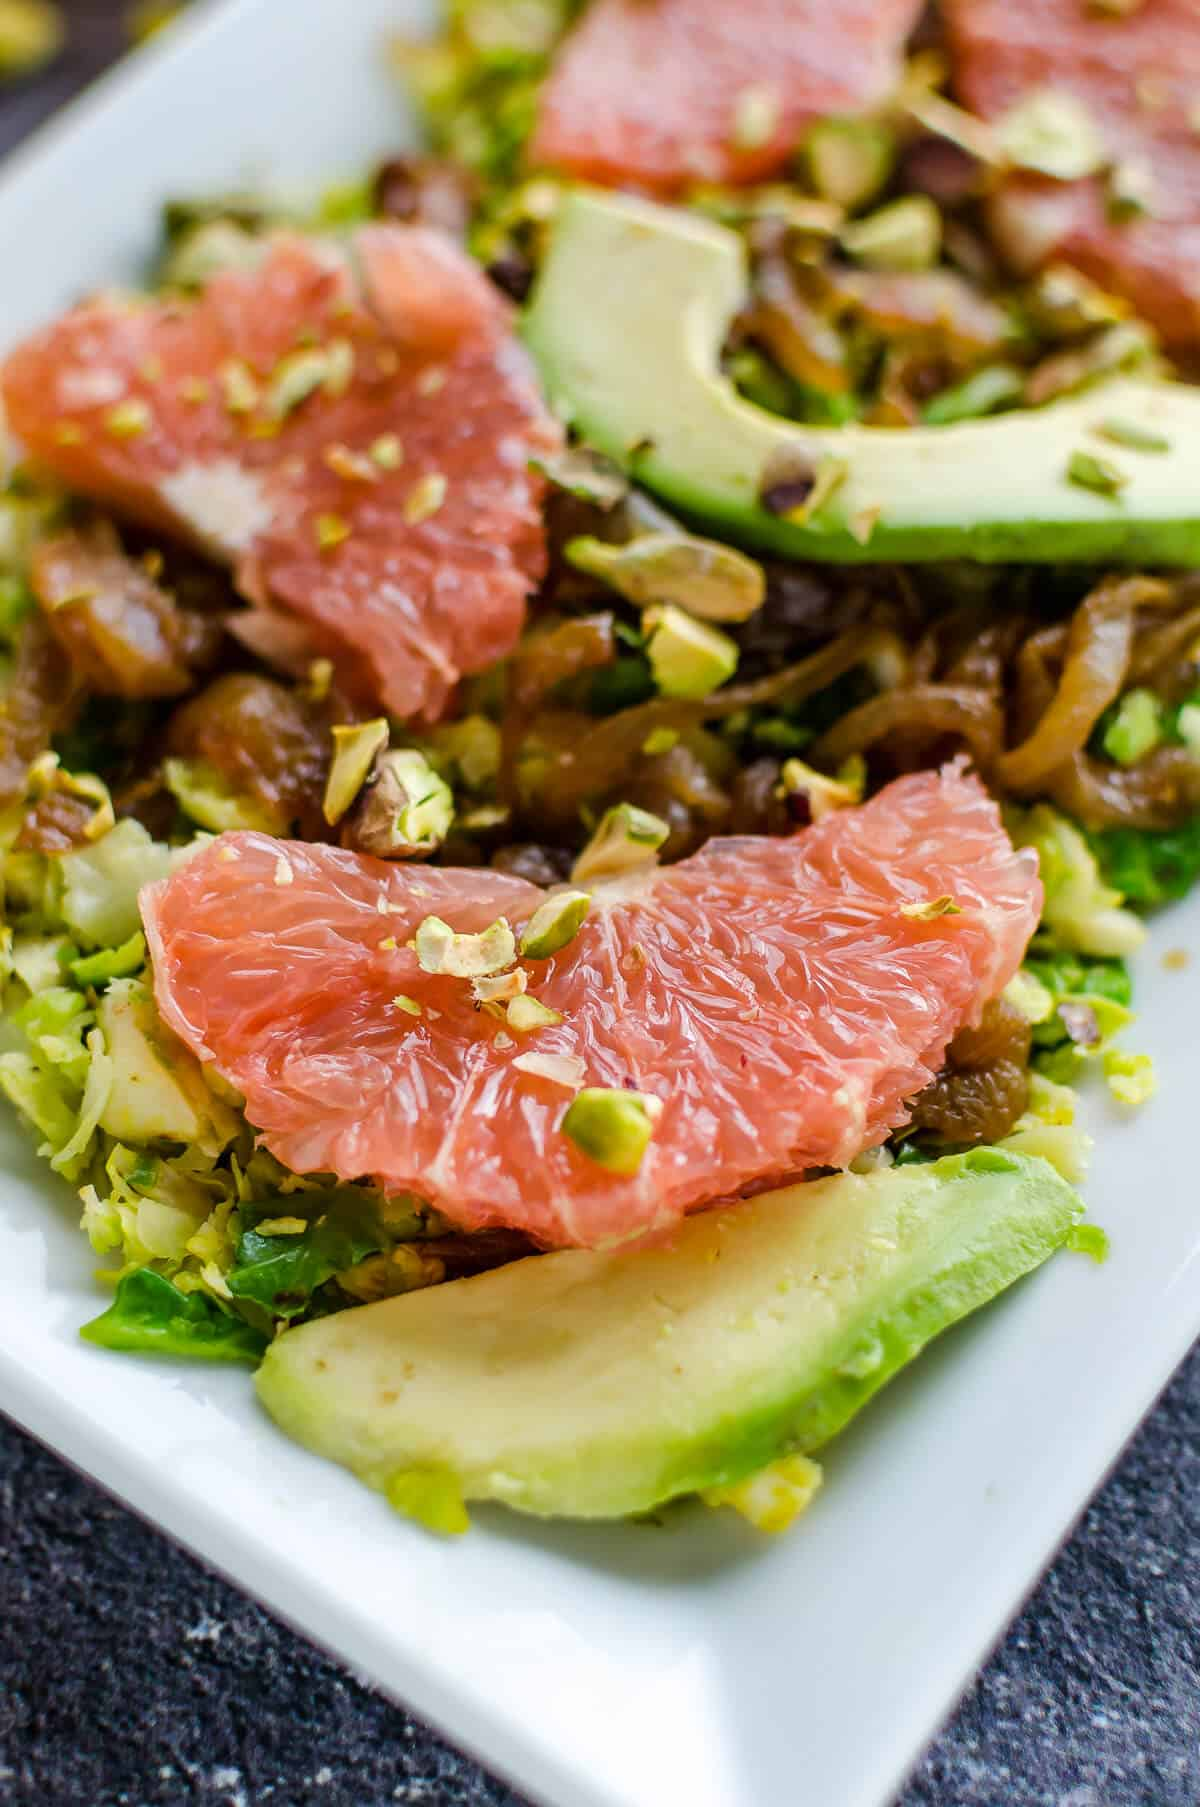 corner of platter containing chopped brussels sprouts salad with grapefruit and avocado slices